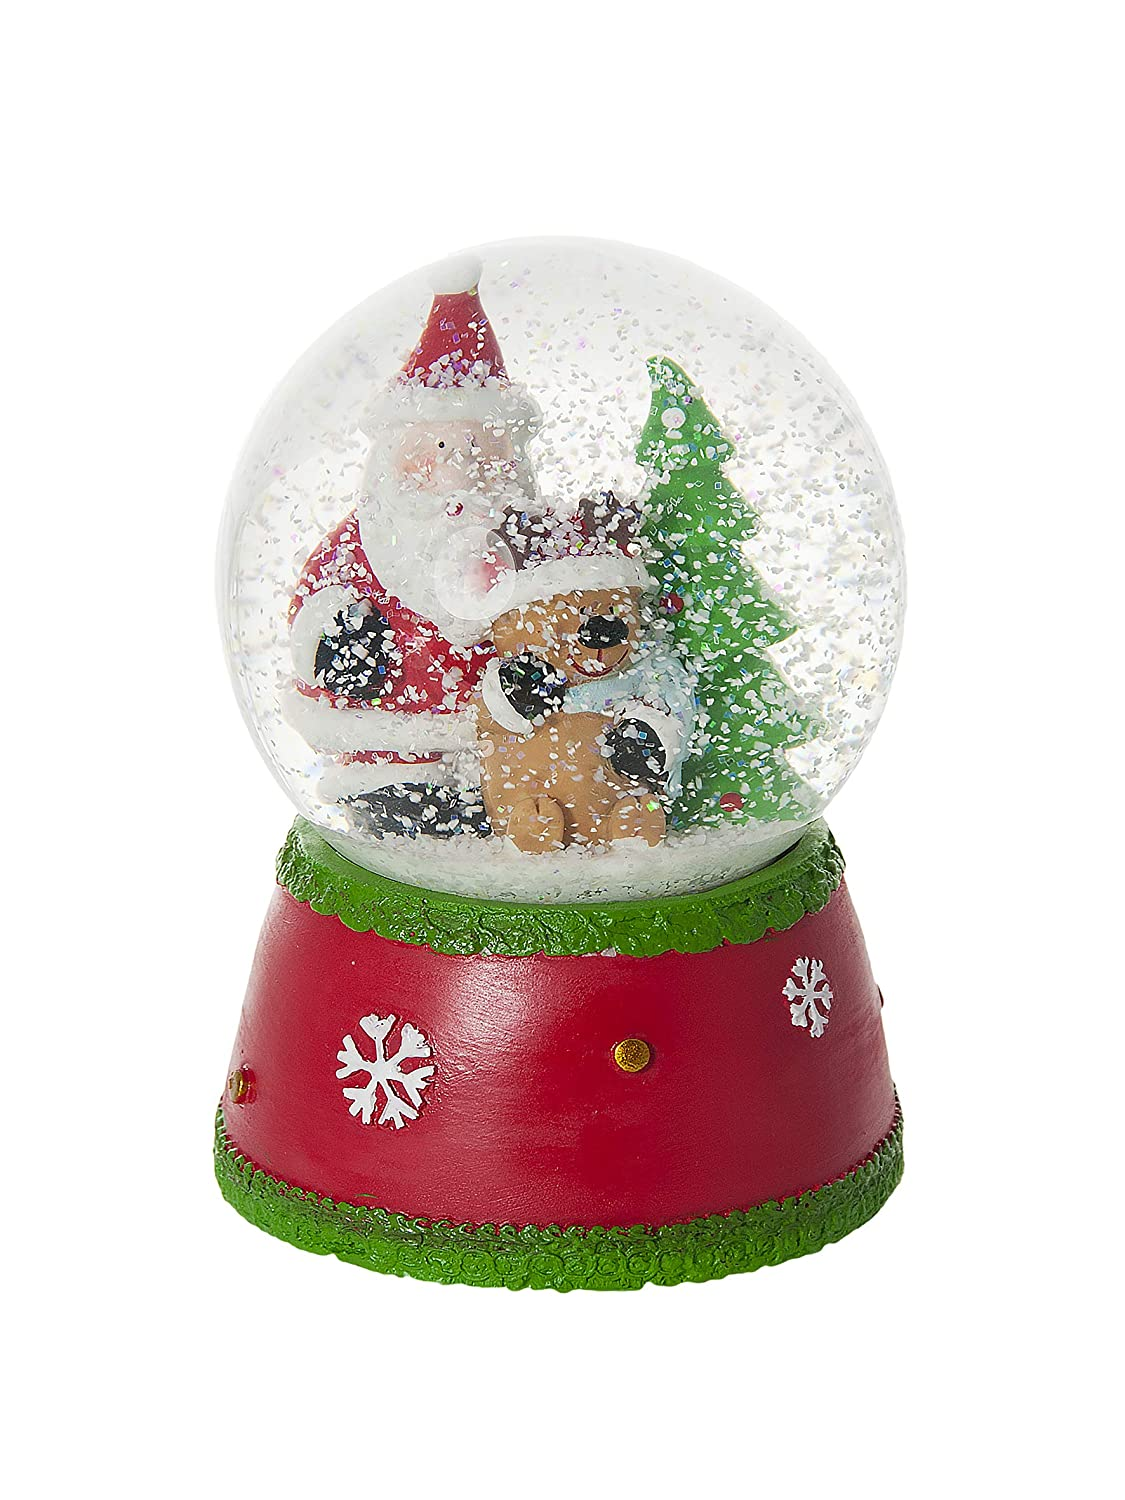 Christmas Snow Globe Music Box Rudolf the Red Nose Reindeer Decoration and Gift for Kids and Adults